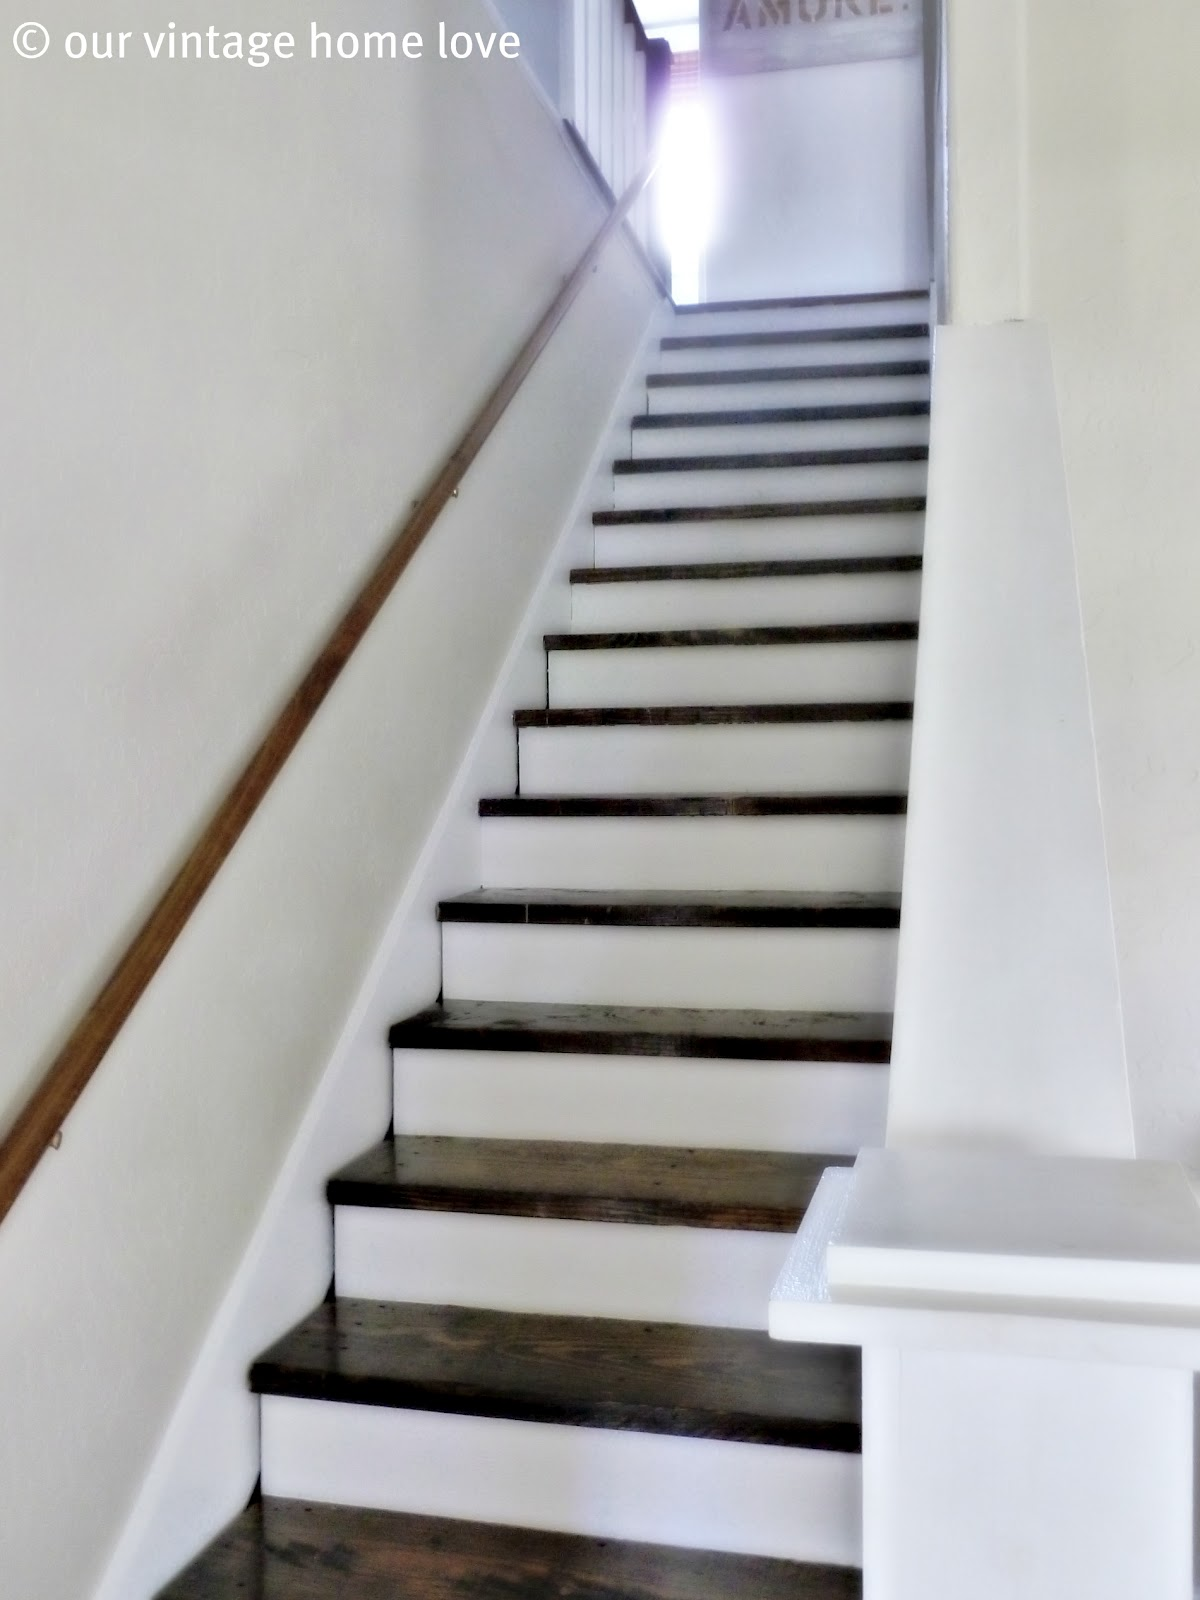 Vintage Home Love New Bedding And Stair Project Update Part I